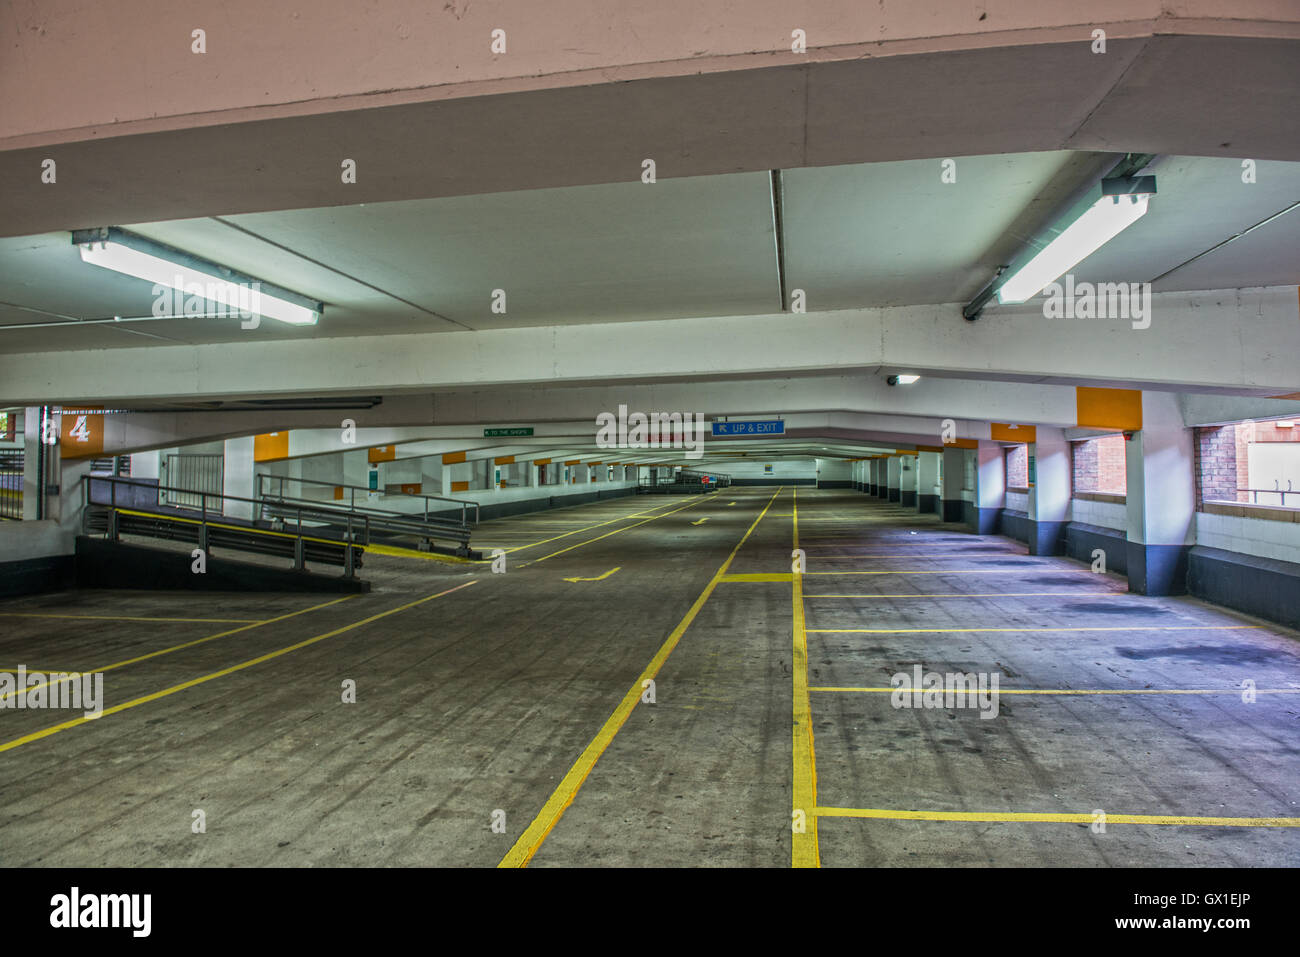 Prince Bishops Shopping Centre Multi Storey Car Park In The City Of